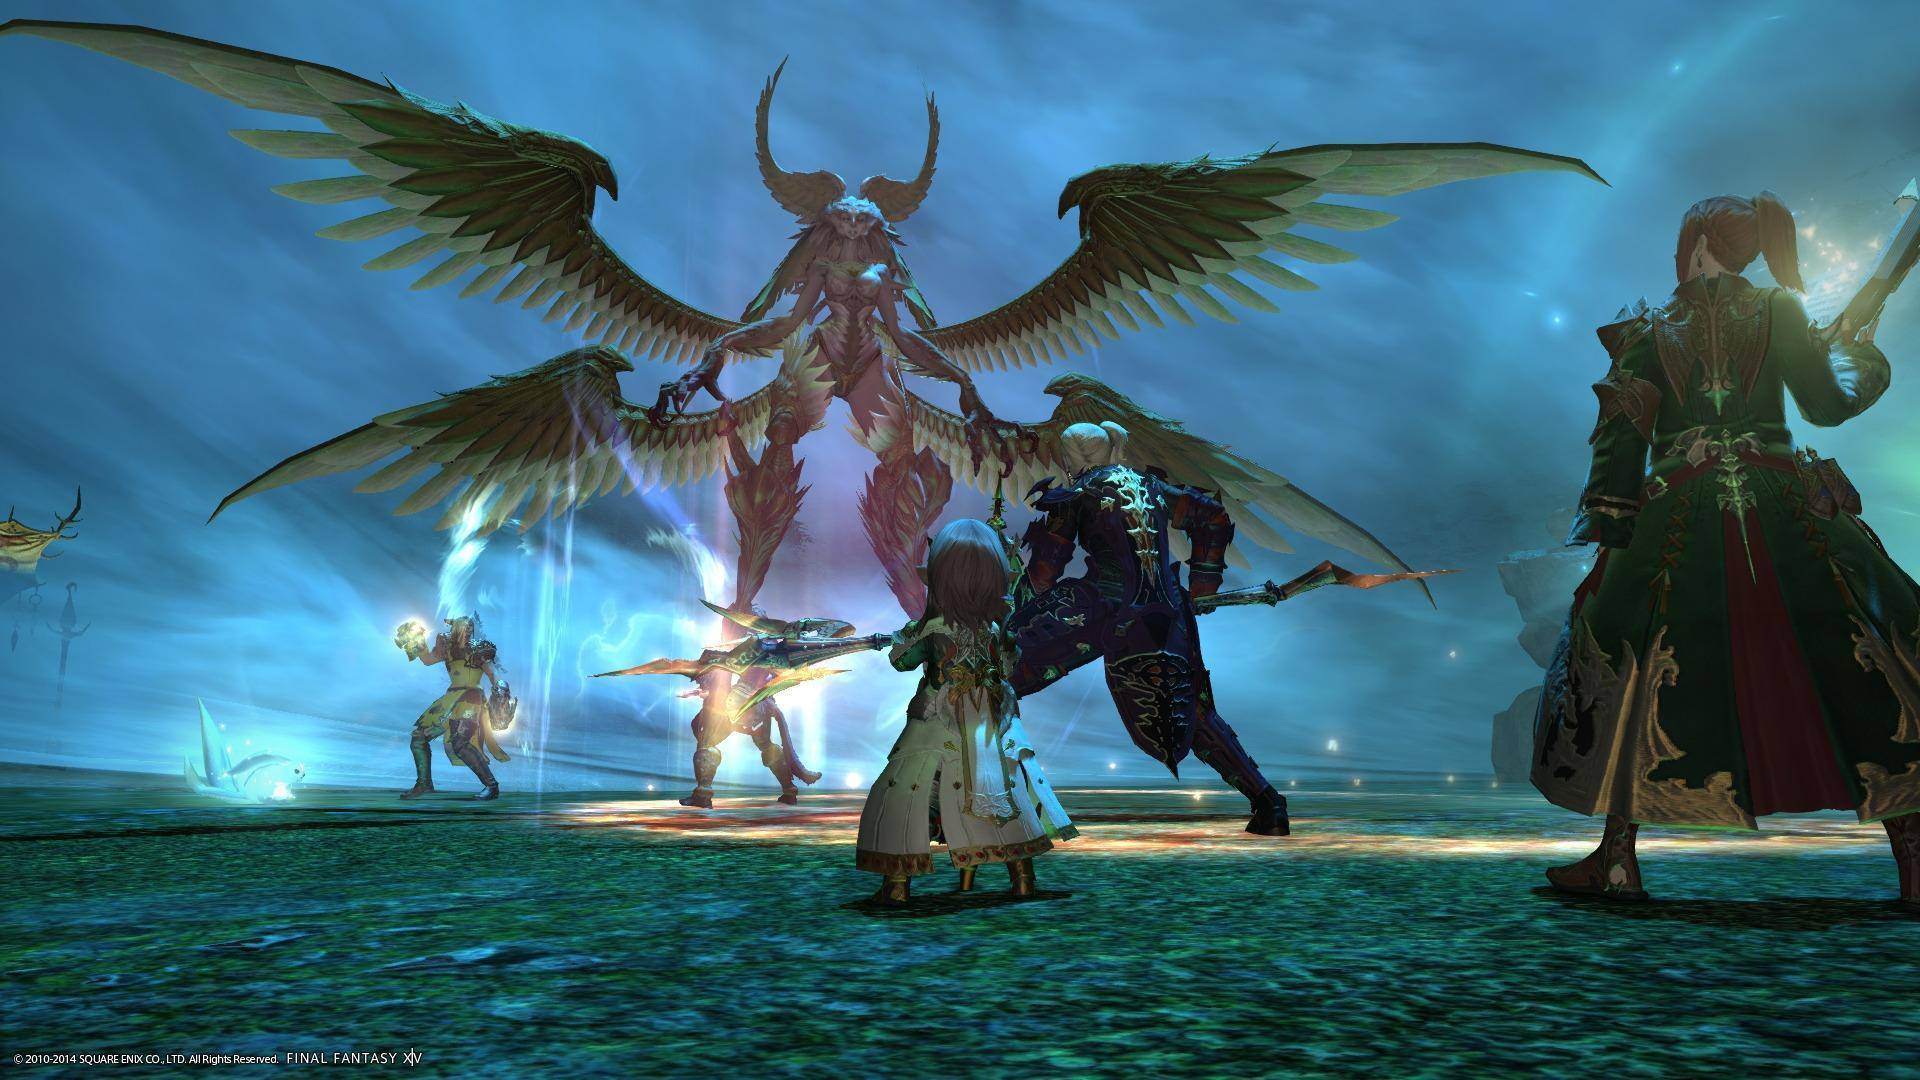 Final Fantasy XIV Online, developed and published by Square Enix is a Massively Multiplayer  Online – Role Playing Game (MMORPG) developed for Microsoft Windows. The game is a fourteenth inclusion to the series and the second MMORPG in the whole series.